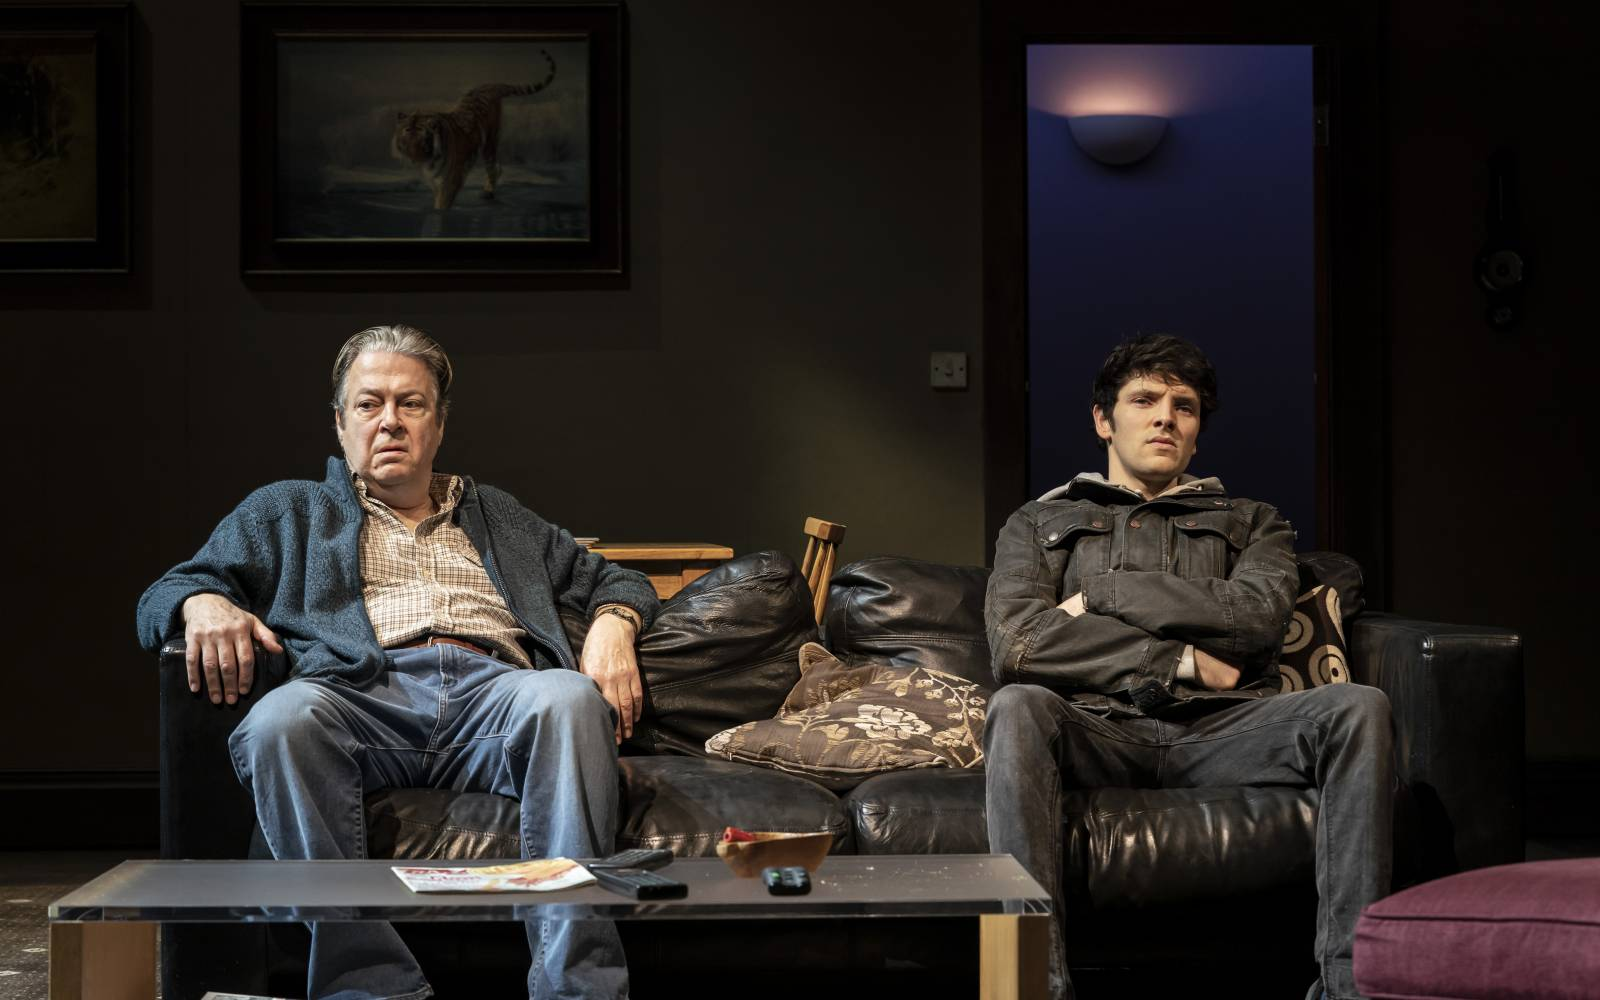 Roger Allam (father) and Colin Morgan (son) sit on a sofa, leaving space between them. They look unhappy